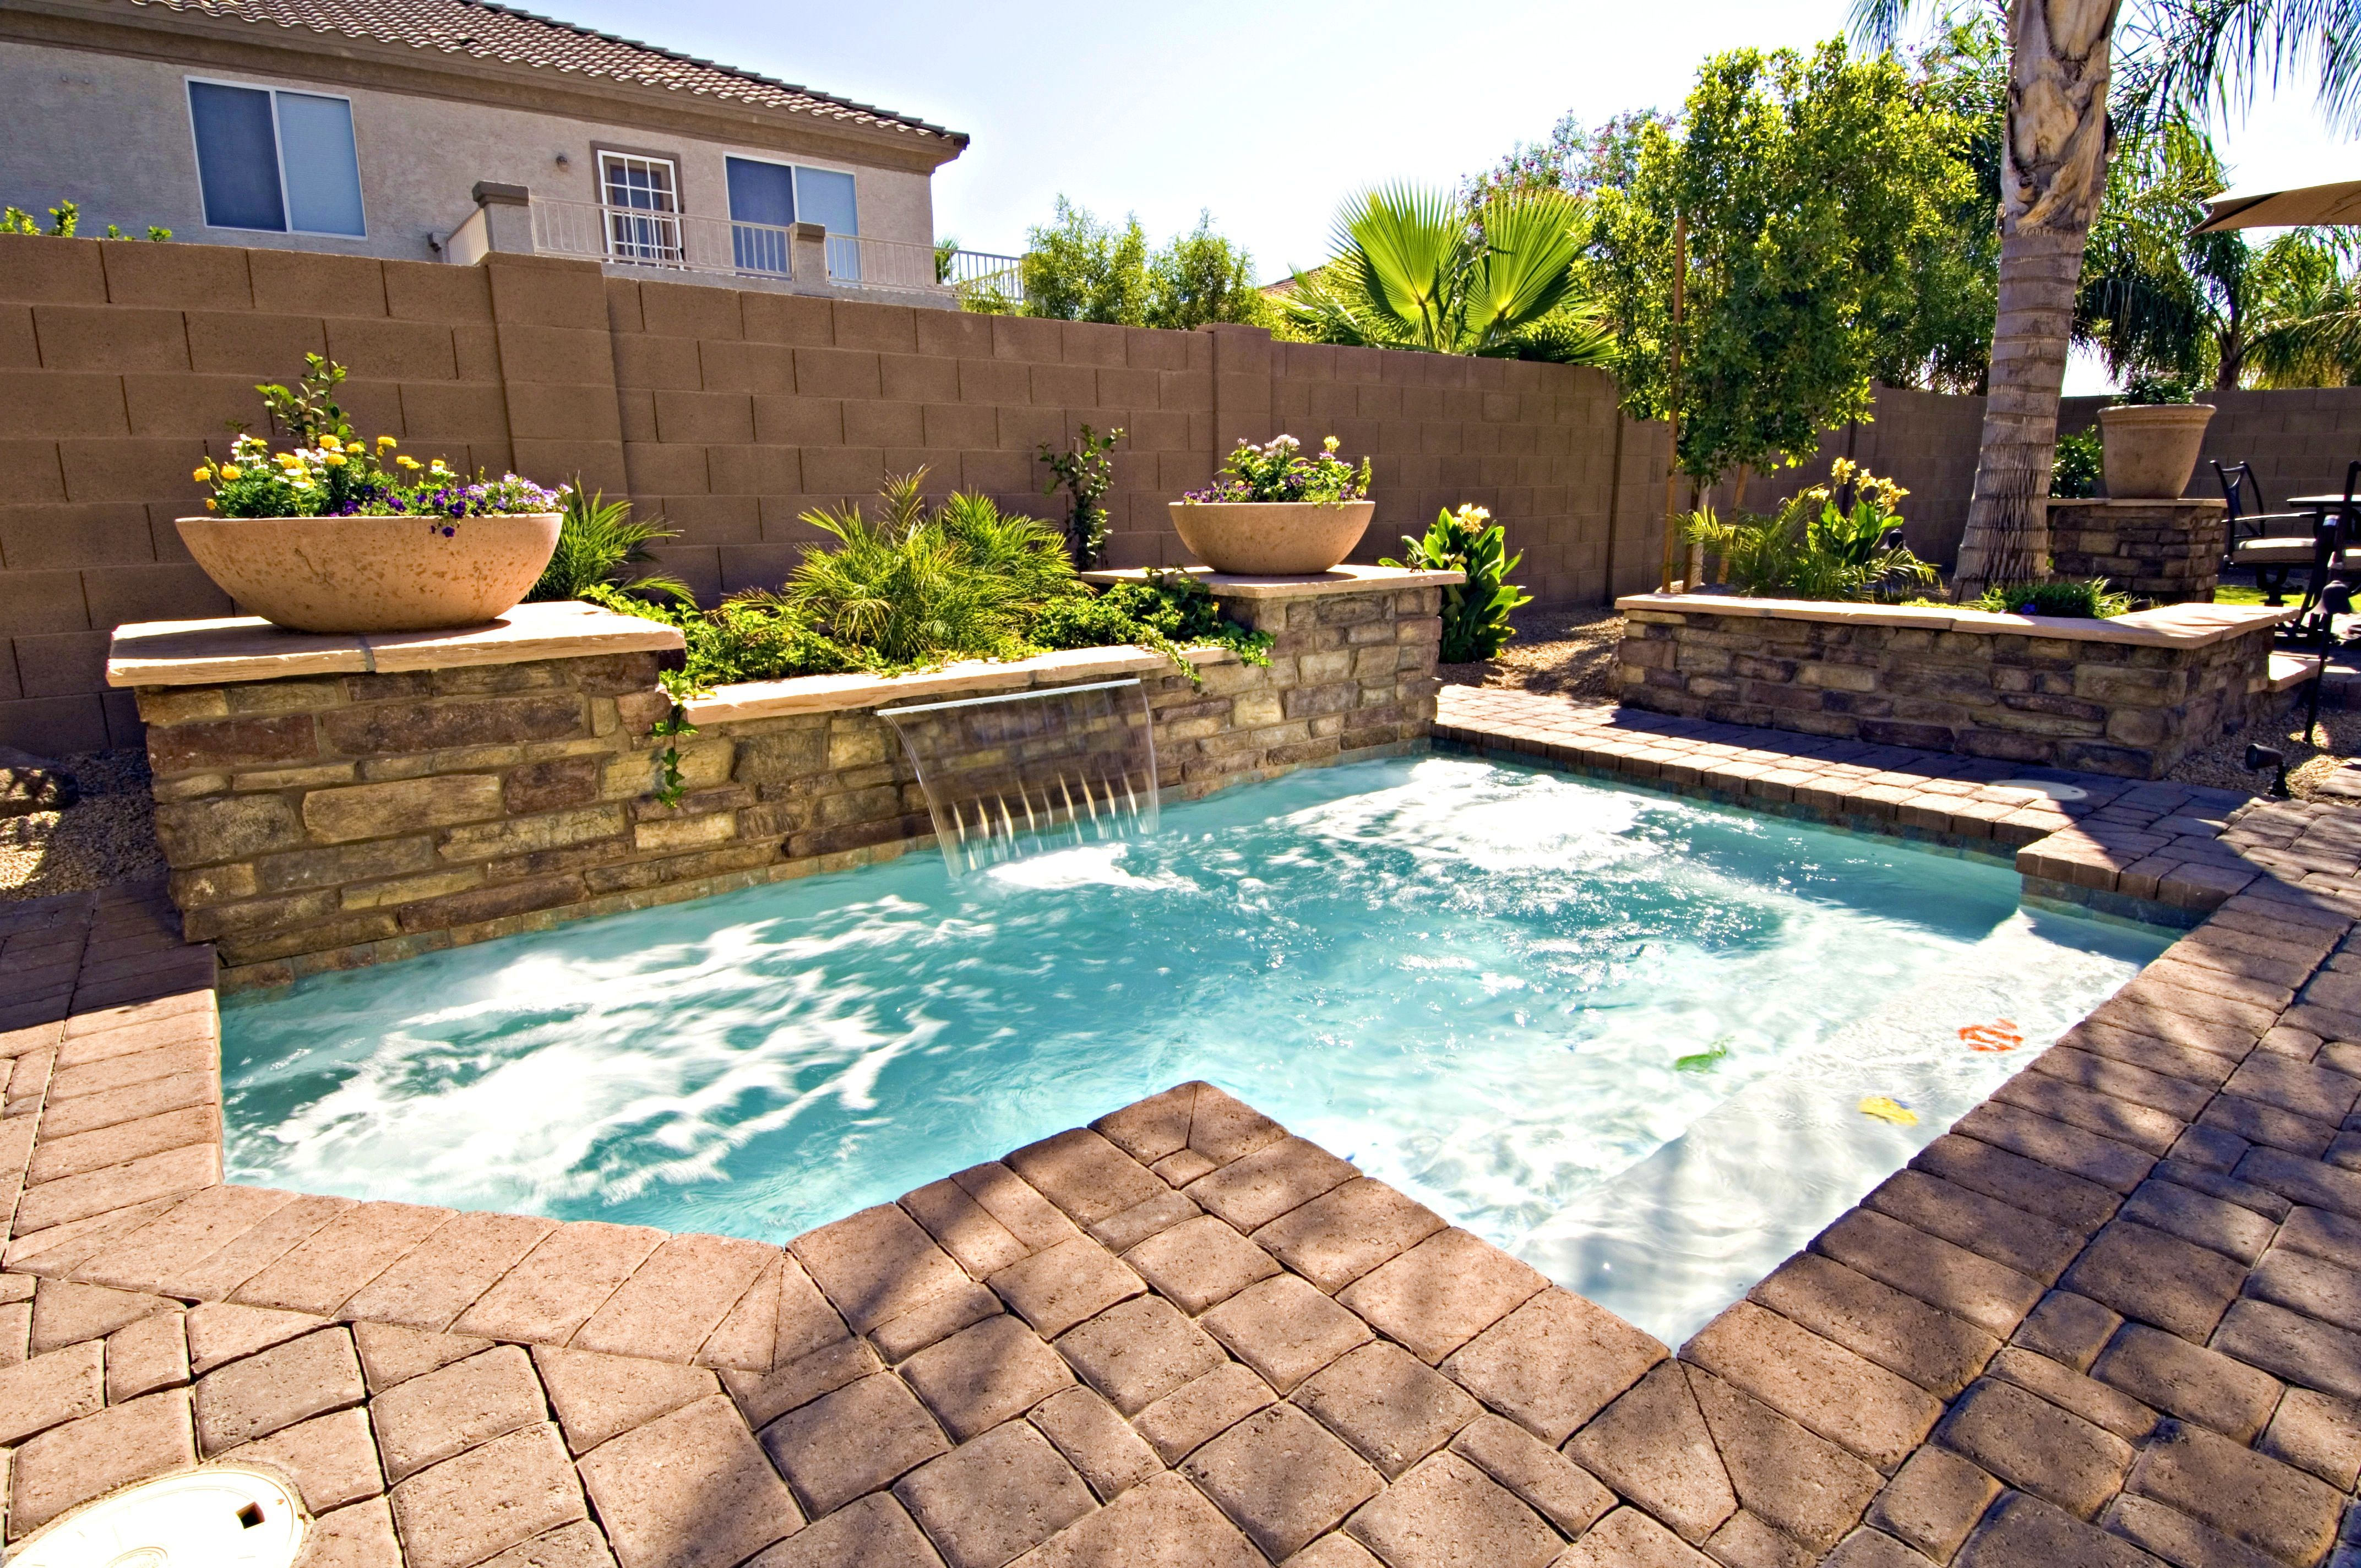 Furniture Fascinating Images About Yard Small Pools Keeping Swimming Clean Ceccdbbdbfdfc Affordable Small Inground Pool Small Pool Design Small Backyard Pools